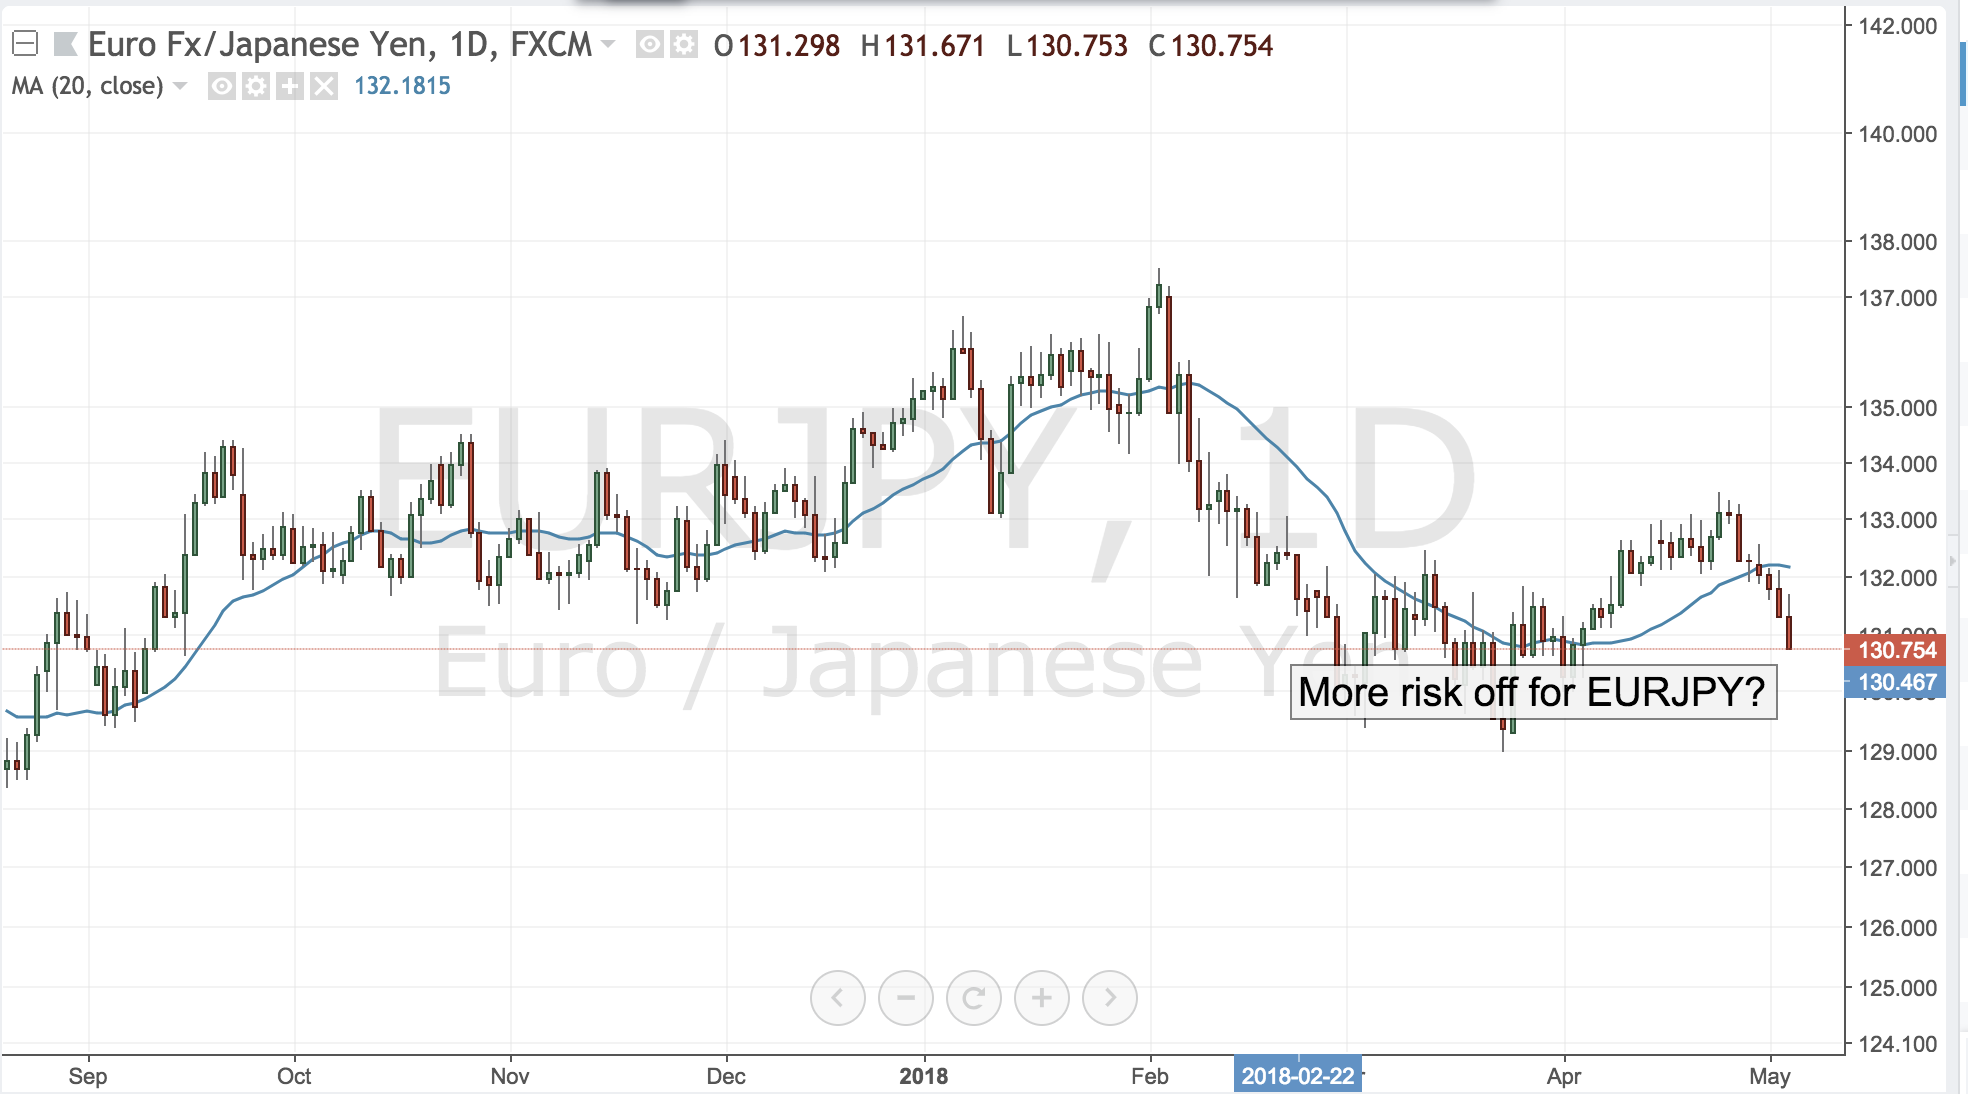 More Risk off for EURJPY?